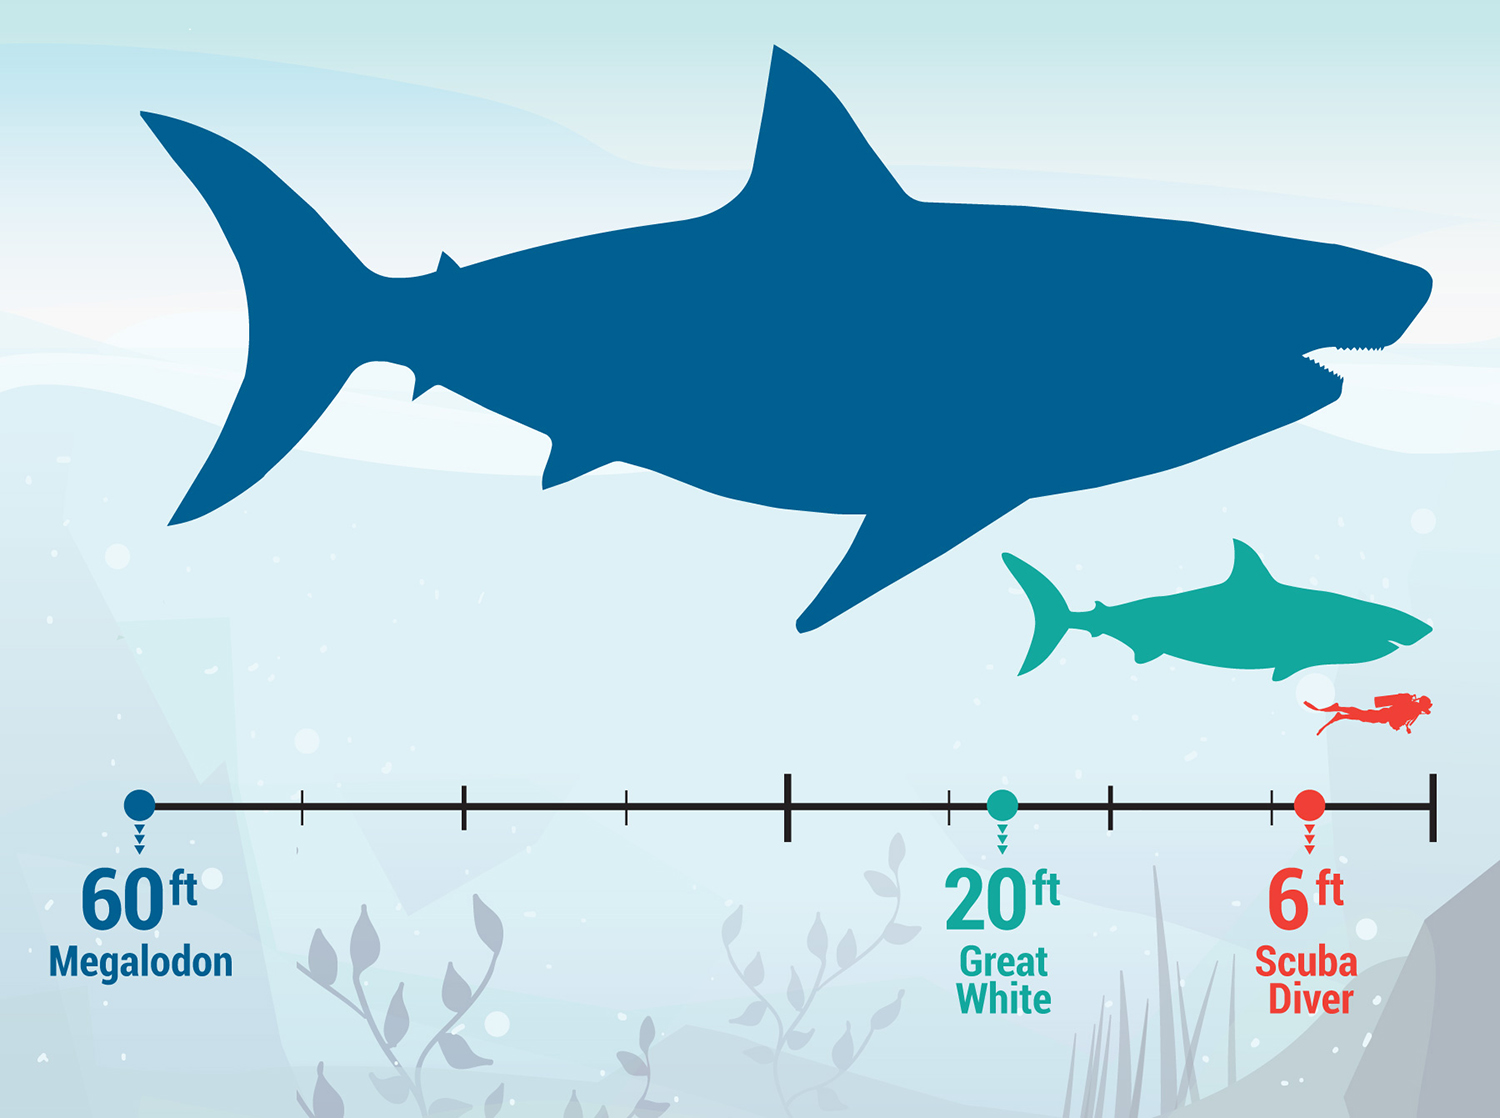 Megalodon Shark Facts – The Largest Known Ocean Predator